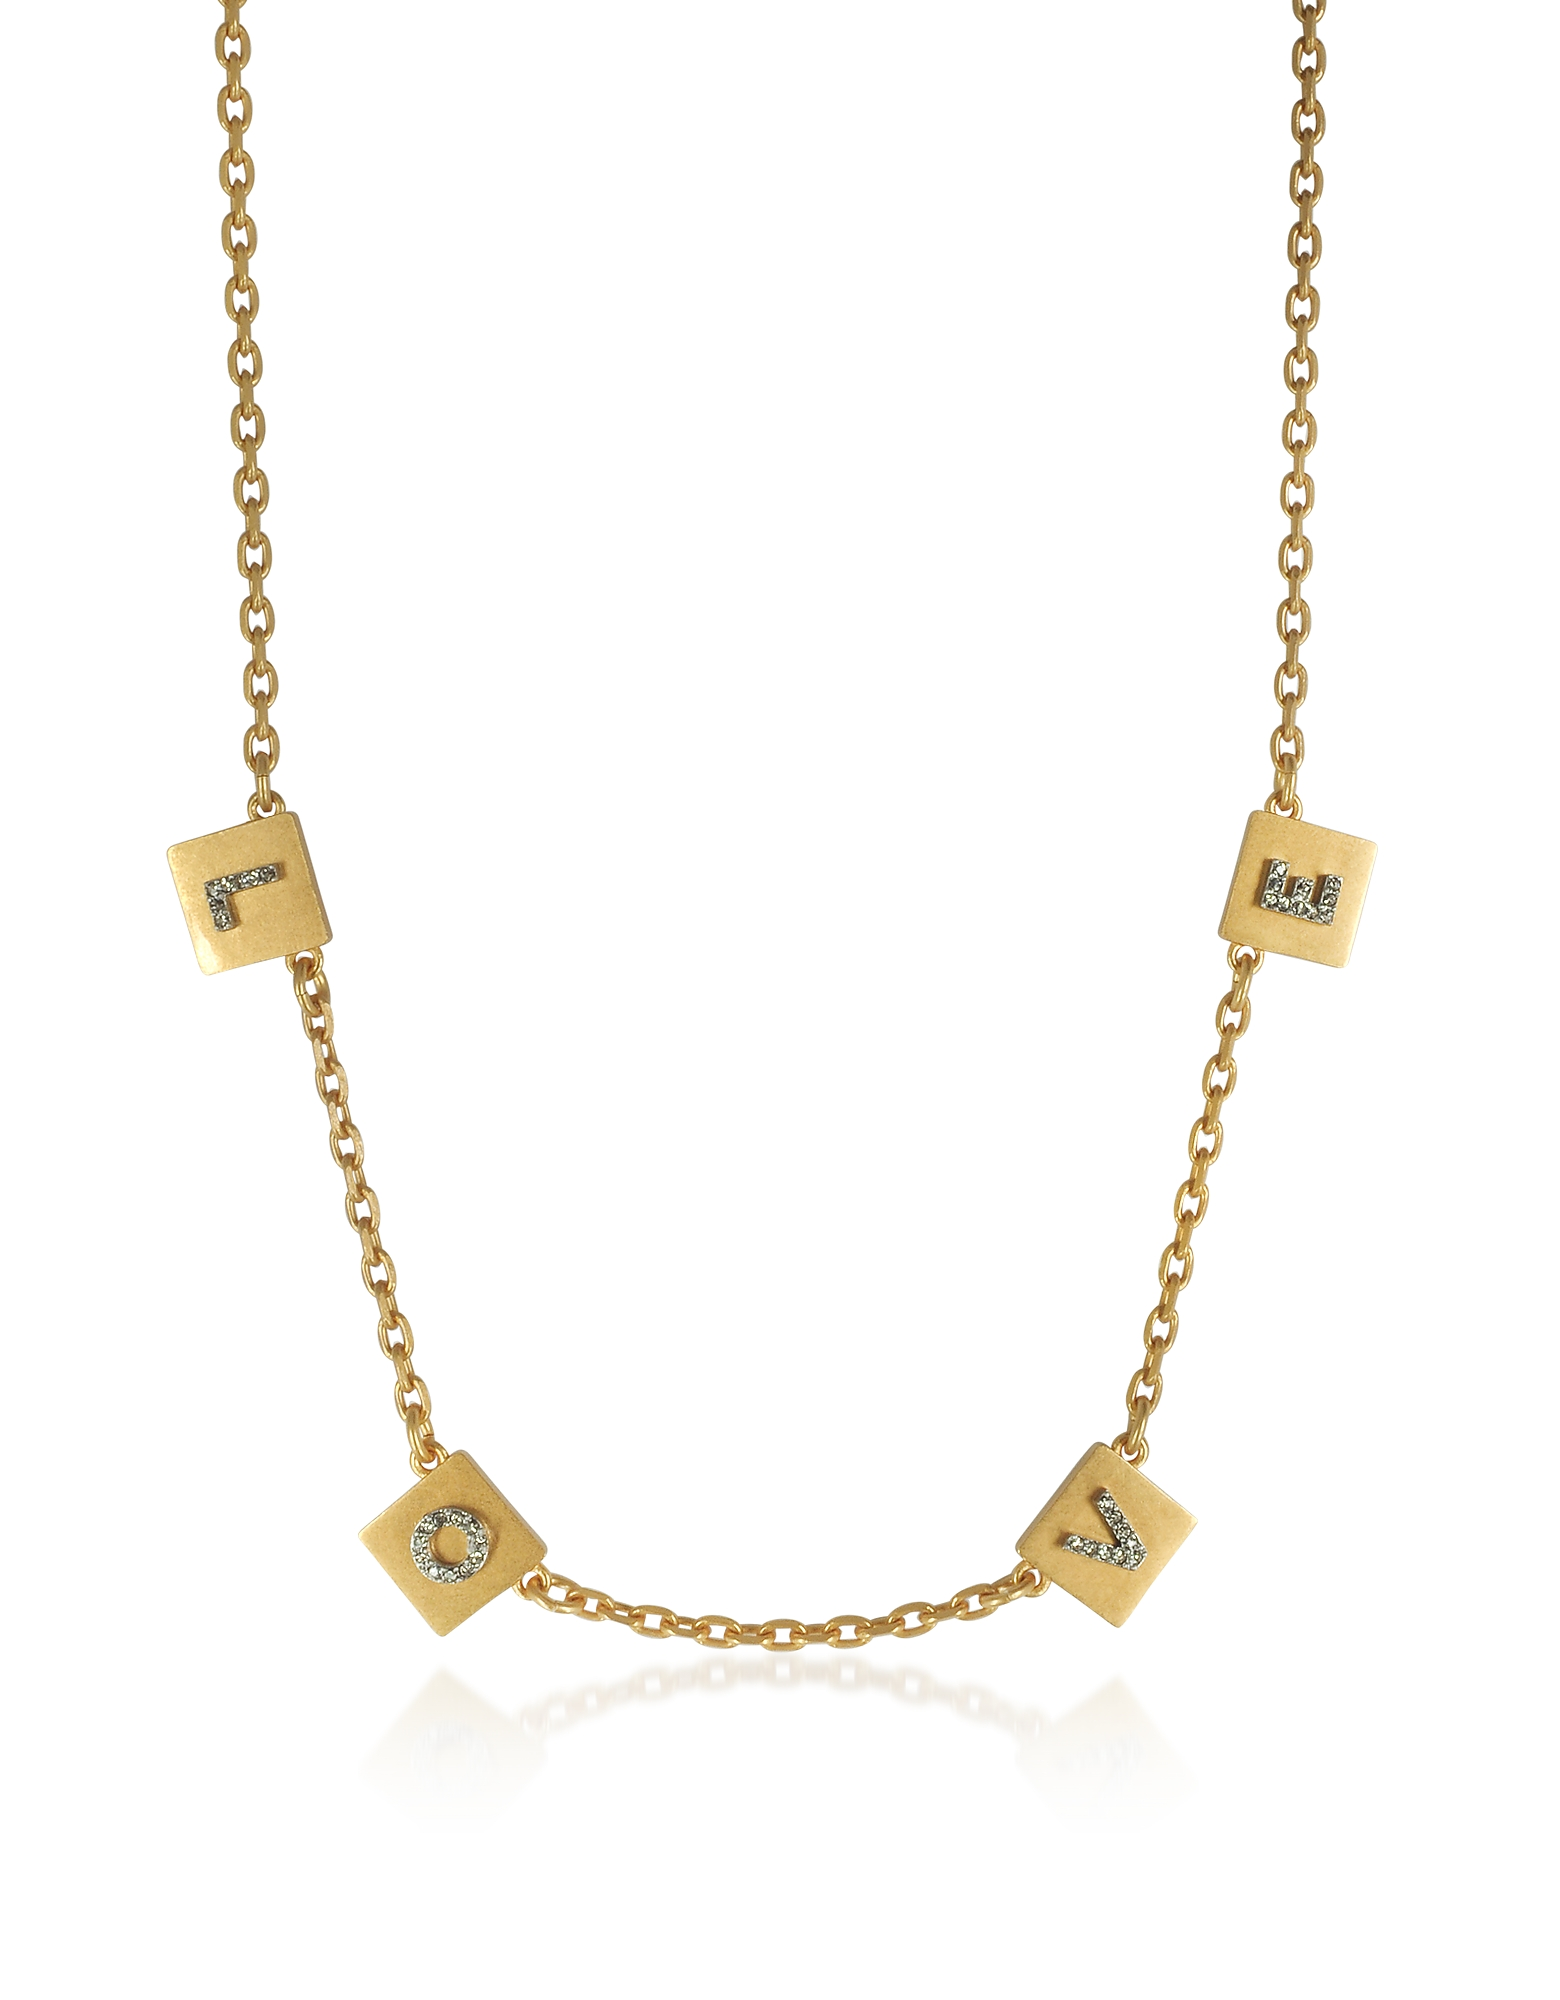 Tory Burch Necklaces, Love Message Delicate Choker Necklace